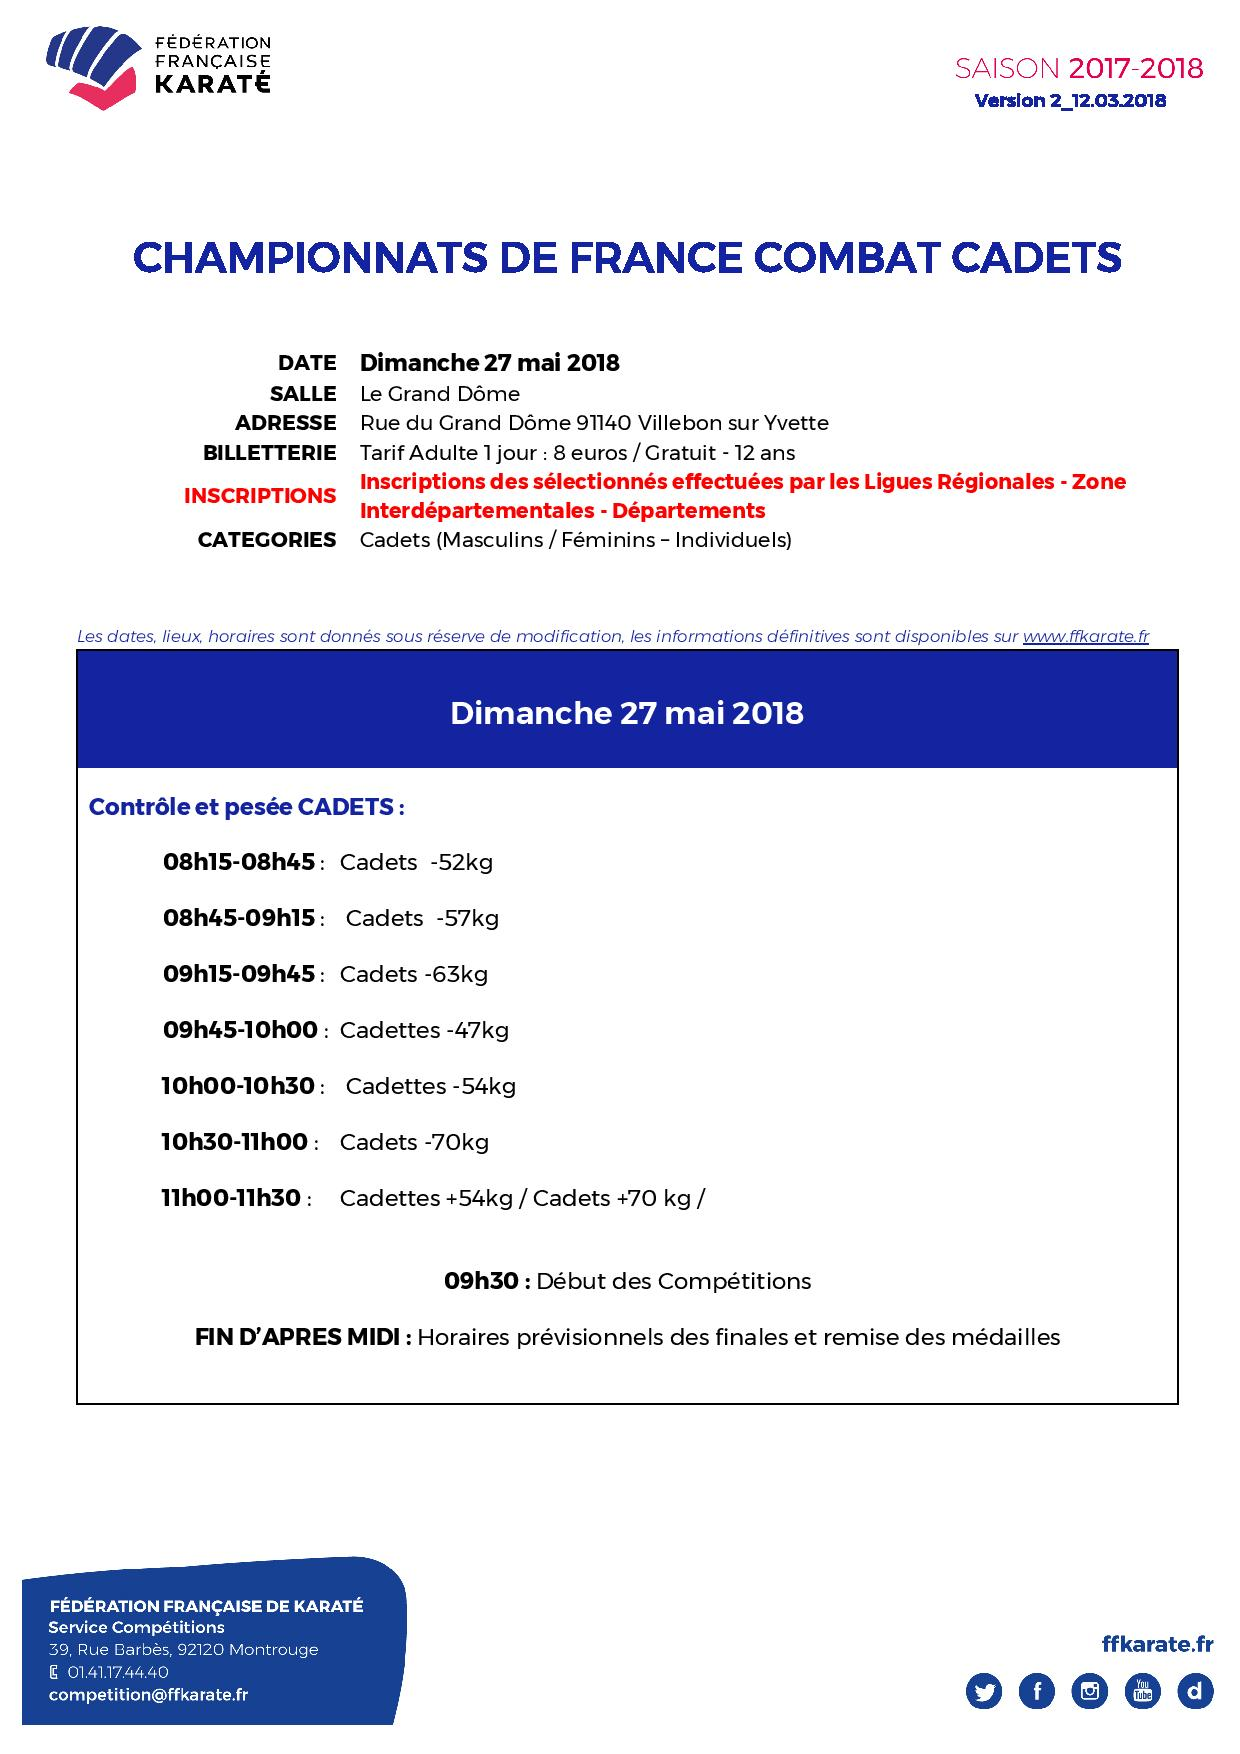 Ch_Fr_Comb_Cadets_27052018_Version-2_Prog-page-001